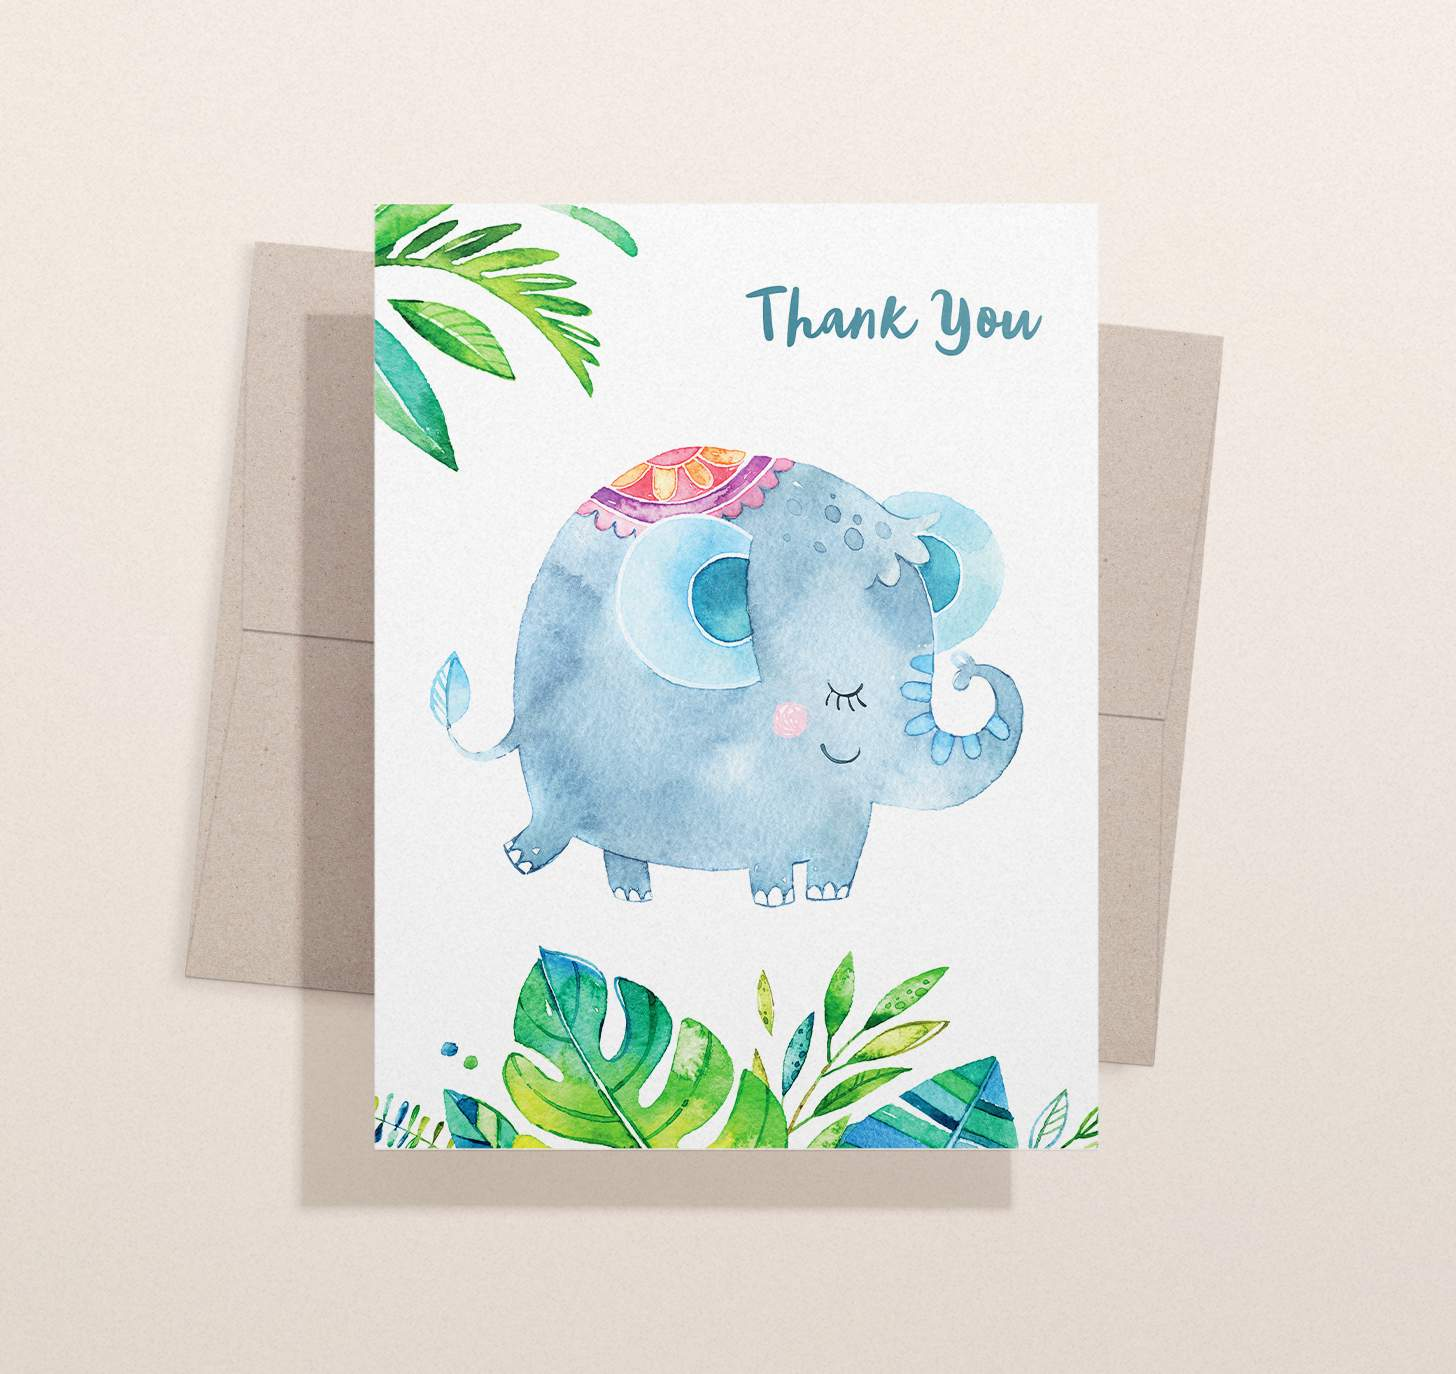 Cute blue elephant and green leaves design with envelope